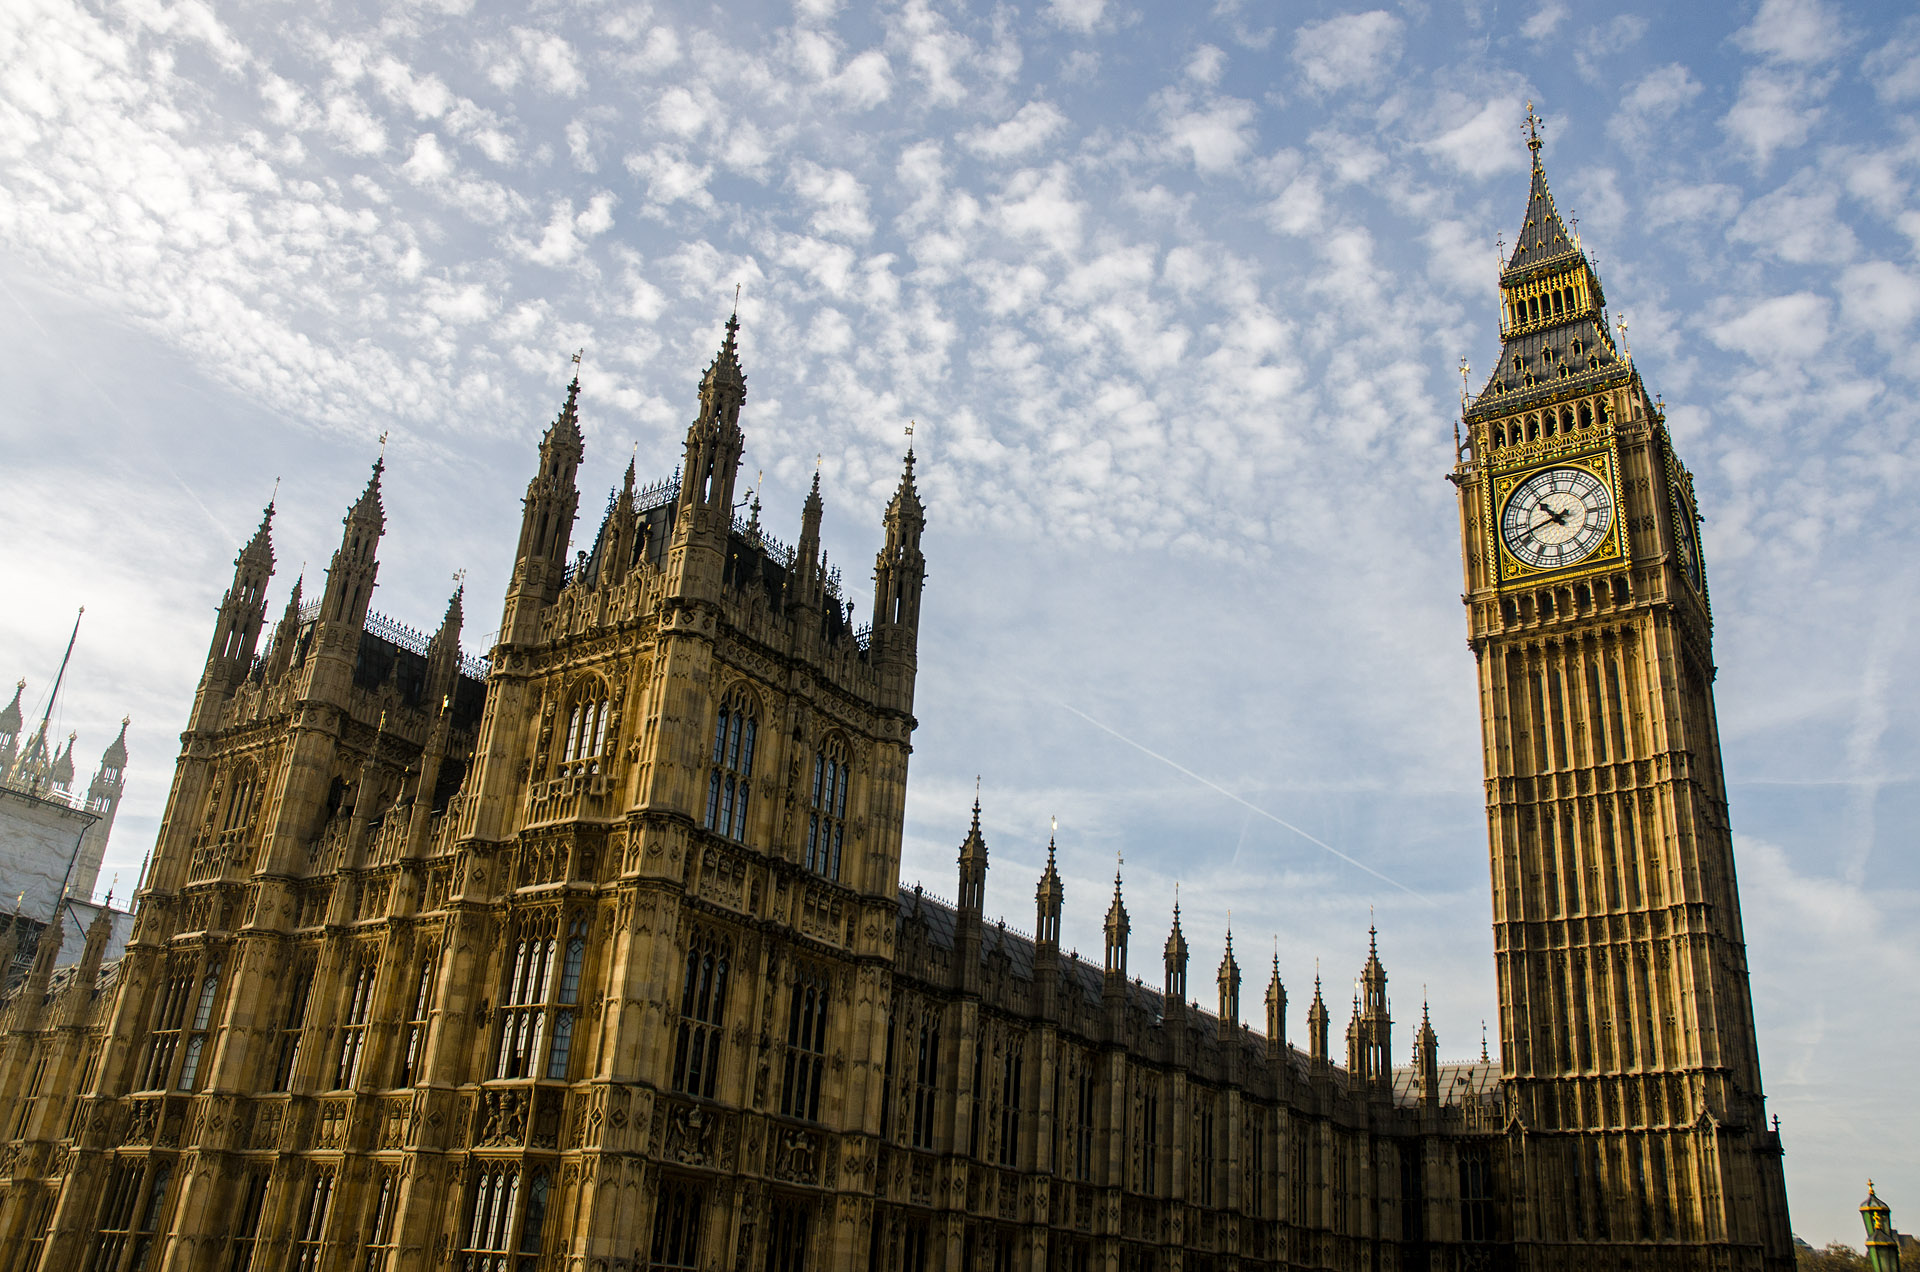 'Big Ben' & Parliament (Palace of Westminster)